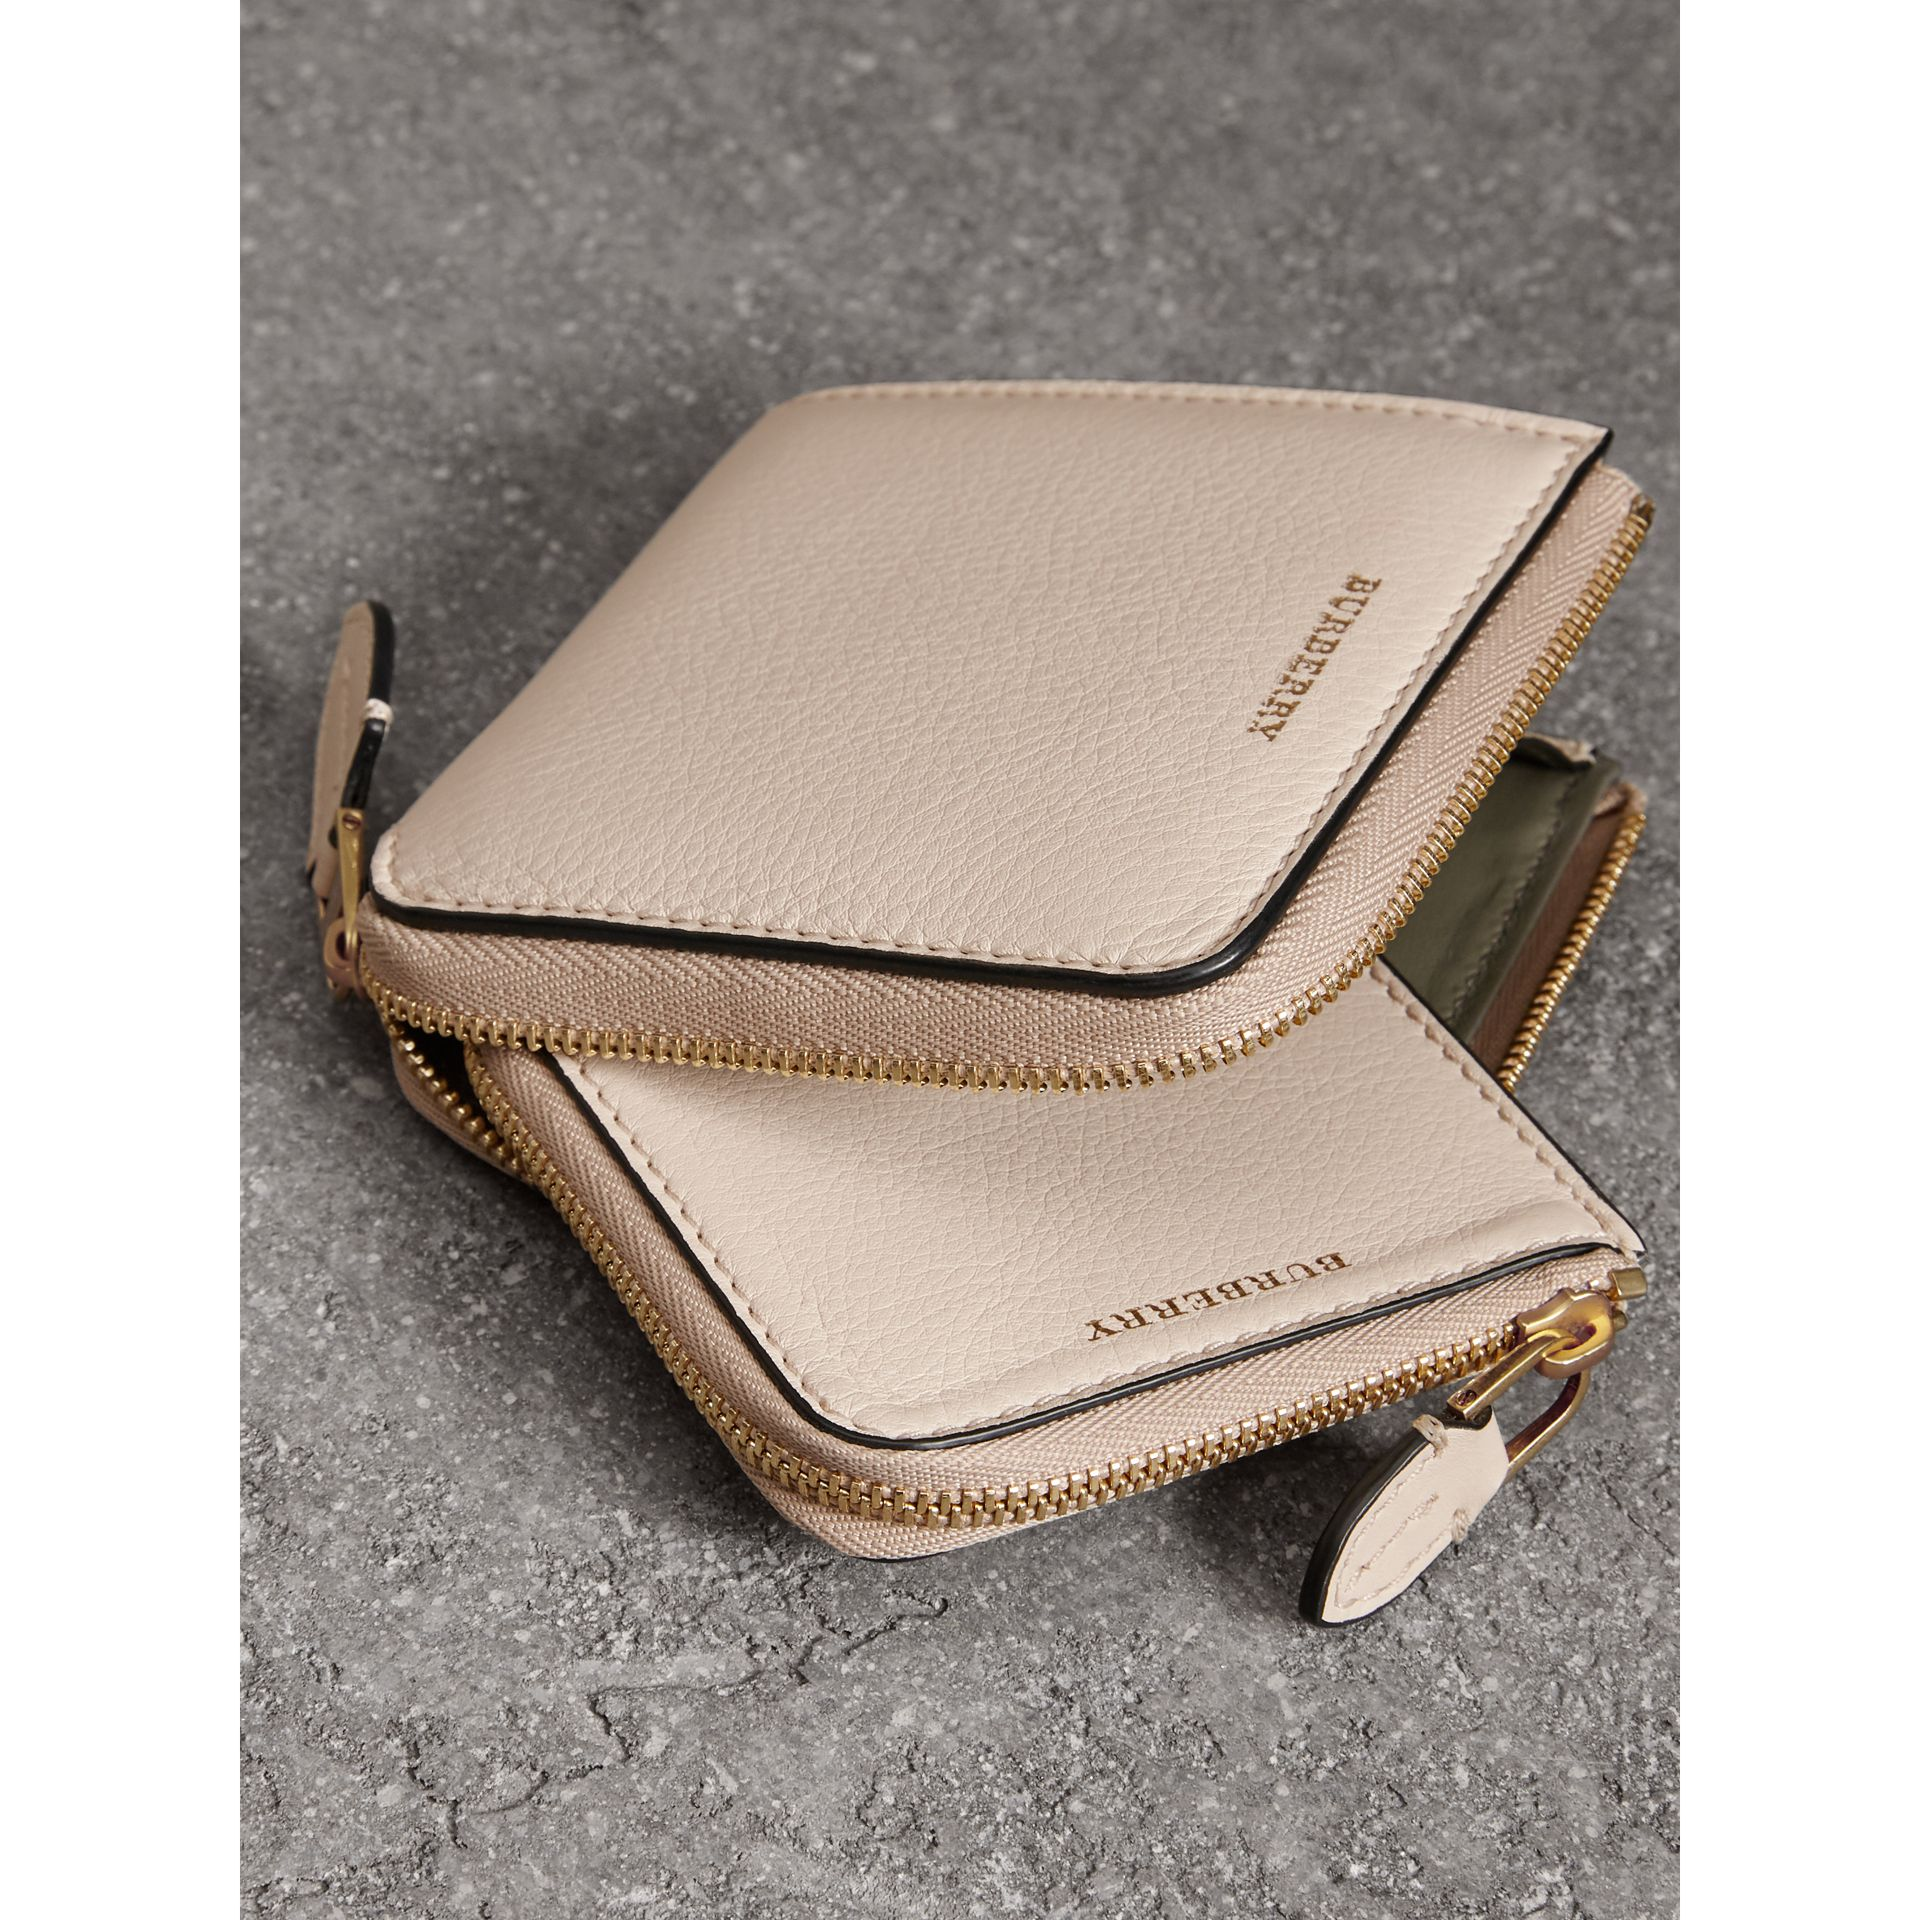 Grainy Leather Square Ziparound Wallet in Limestone - Women | Burberry United Kingdom - gallery image 3